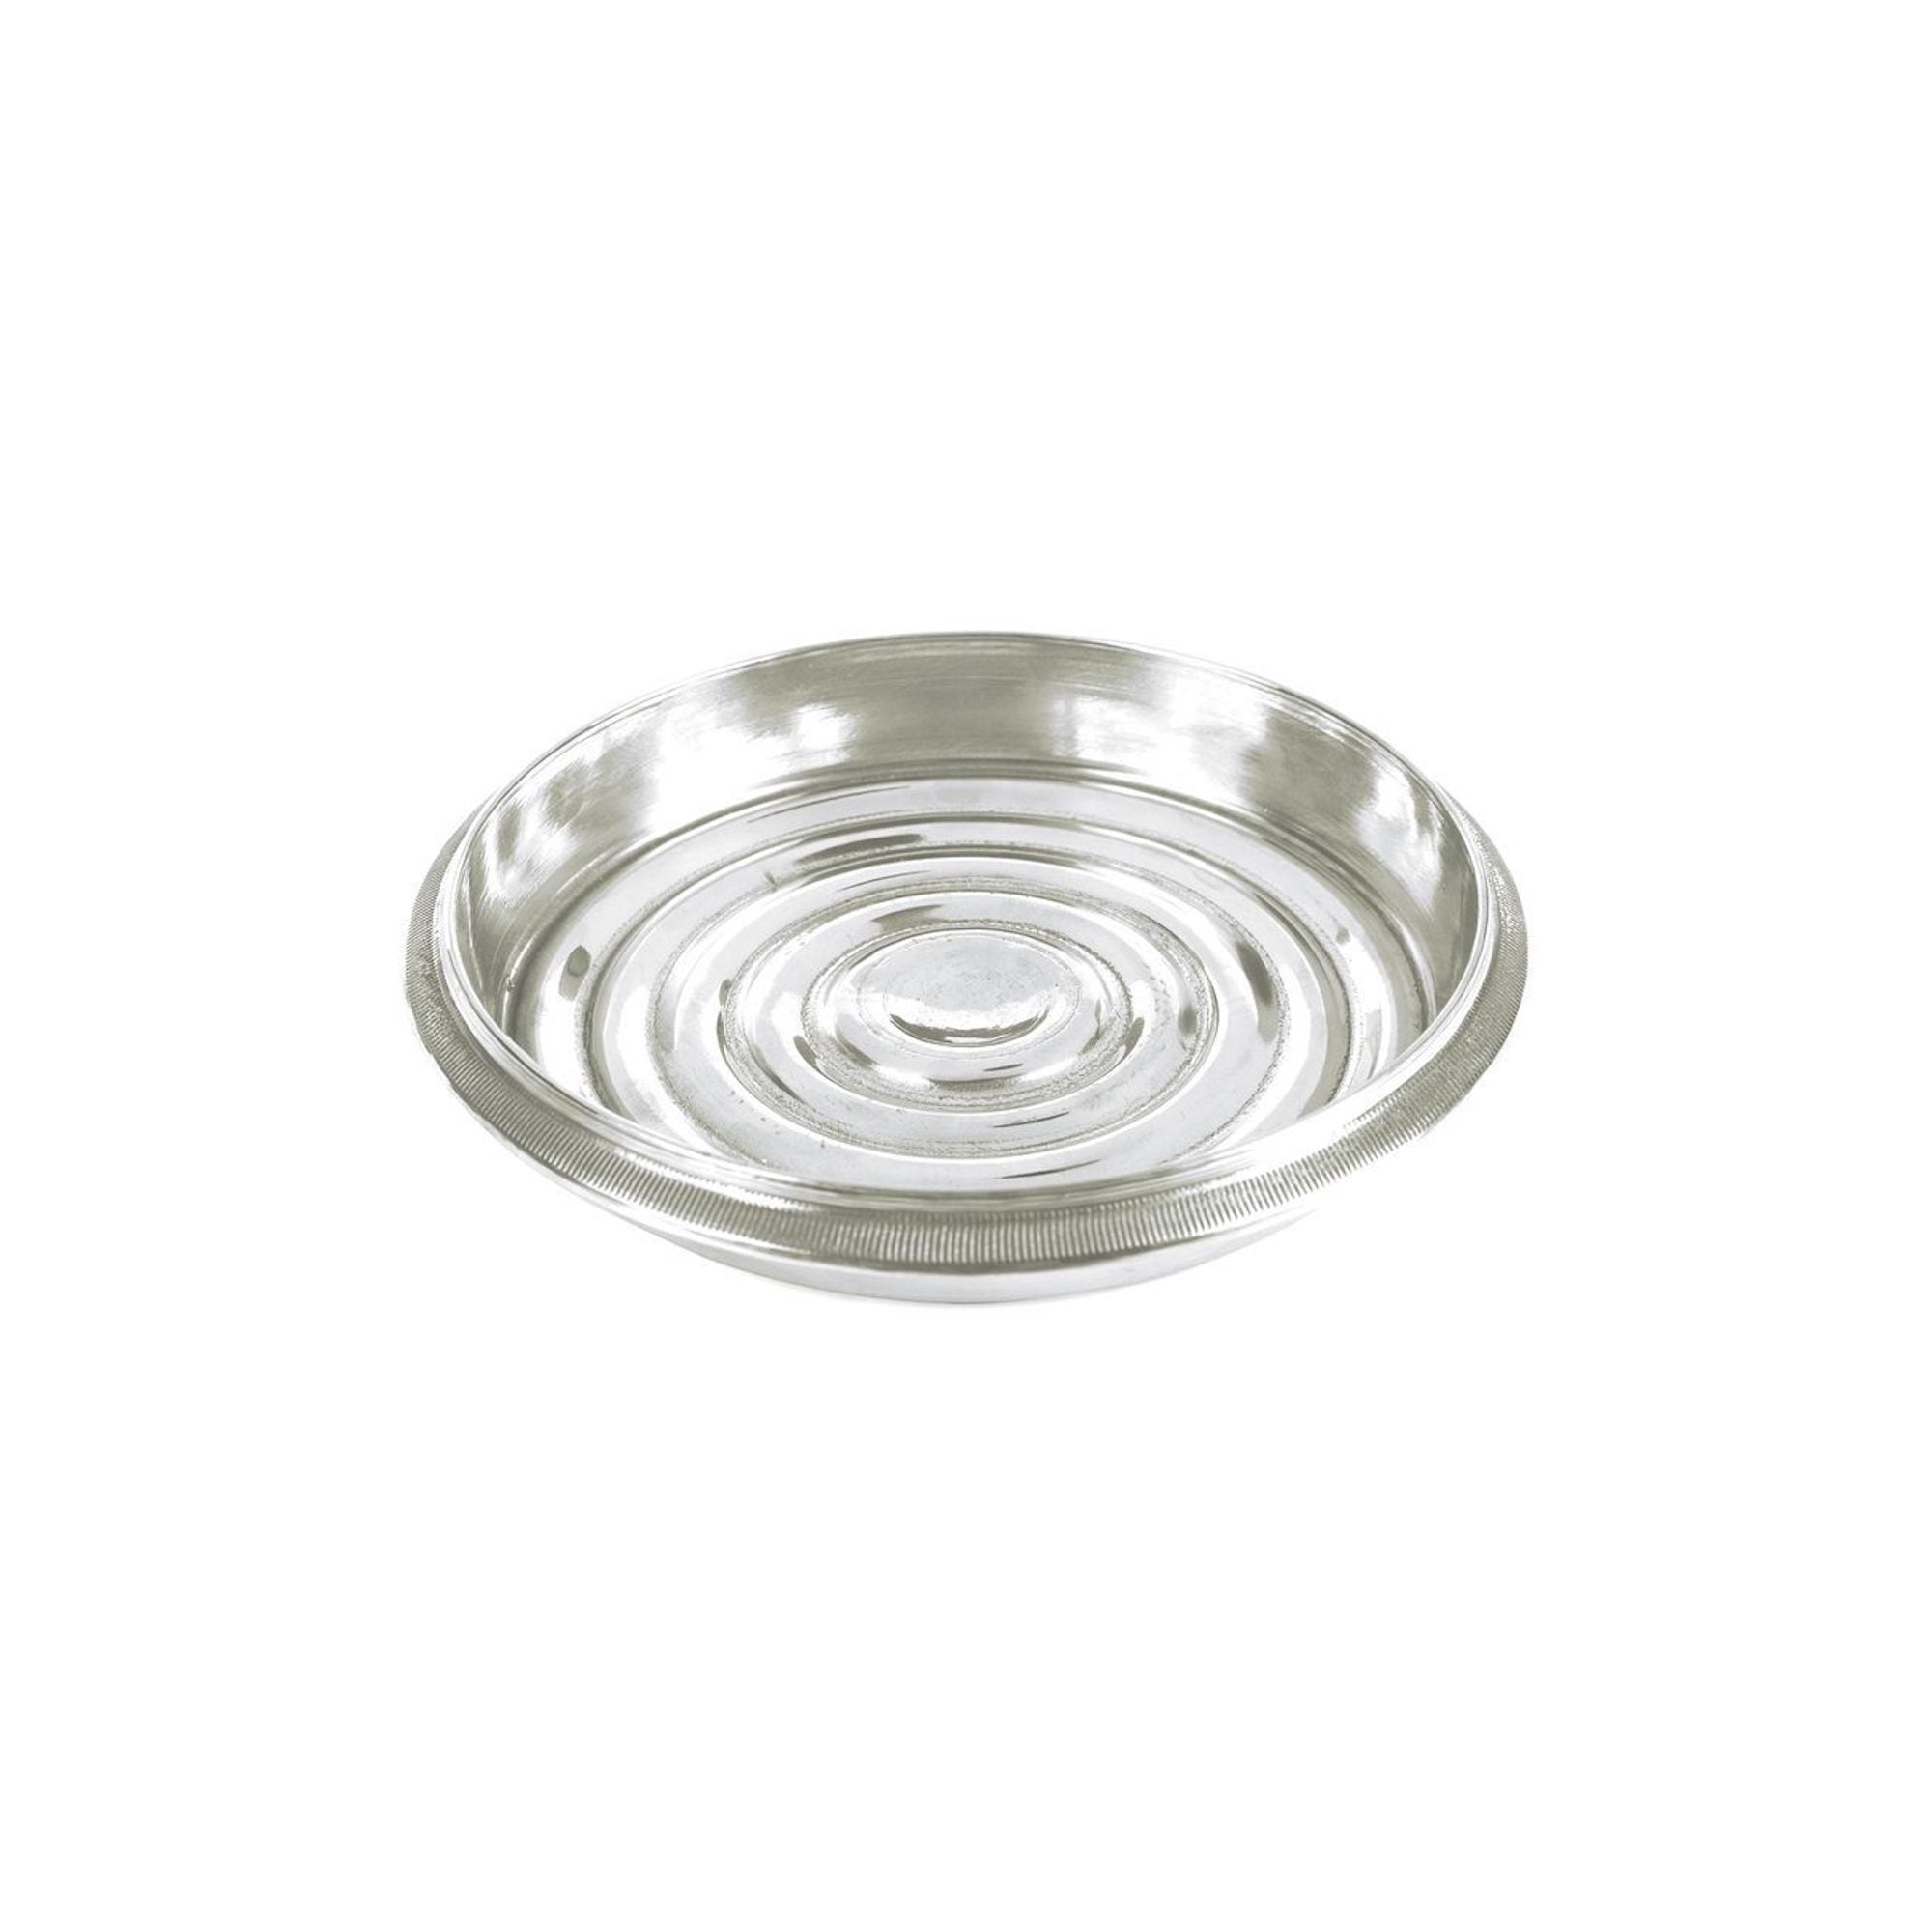 Coin-Edged Bottle Coaster, Nickel